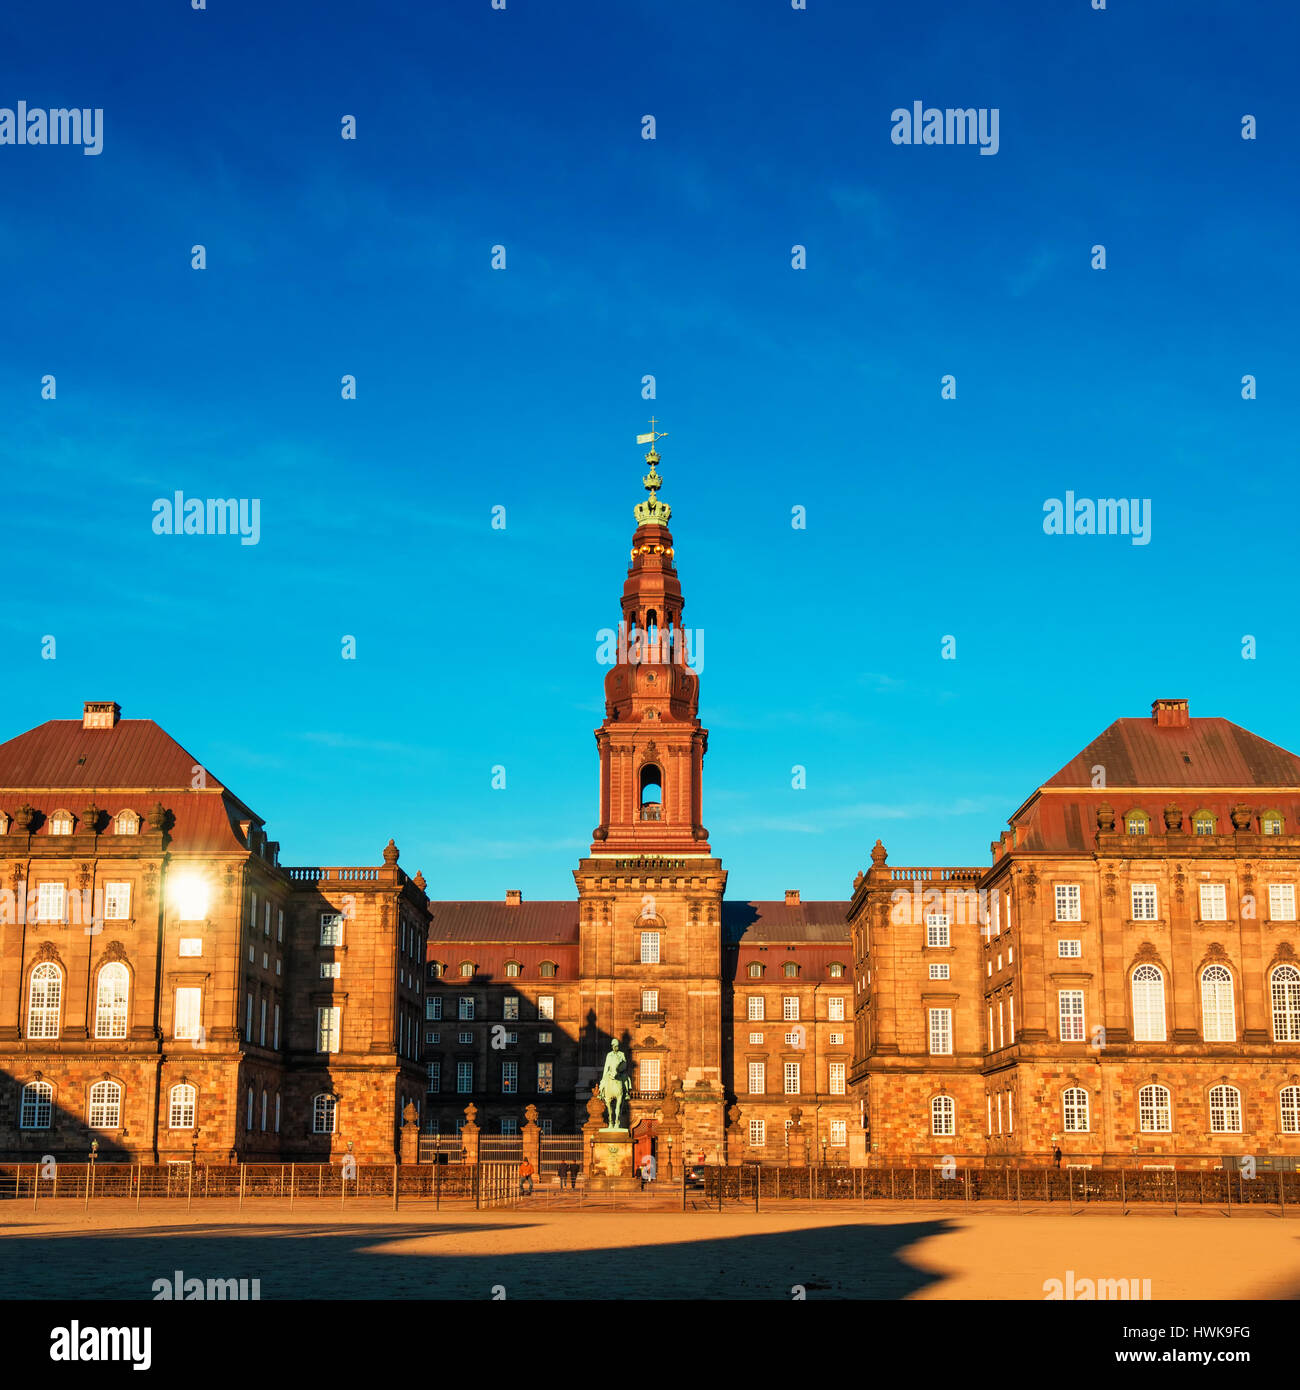 COPENHAGEN, DENMARK - MARCH 11, 2017: Christiansborg Palace in Copenhagen Denmark, Danish parliament building. - Stock Image